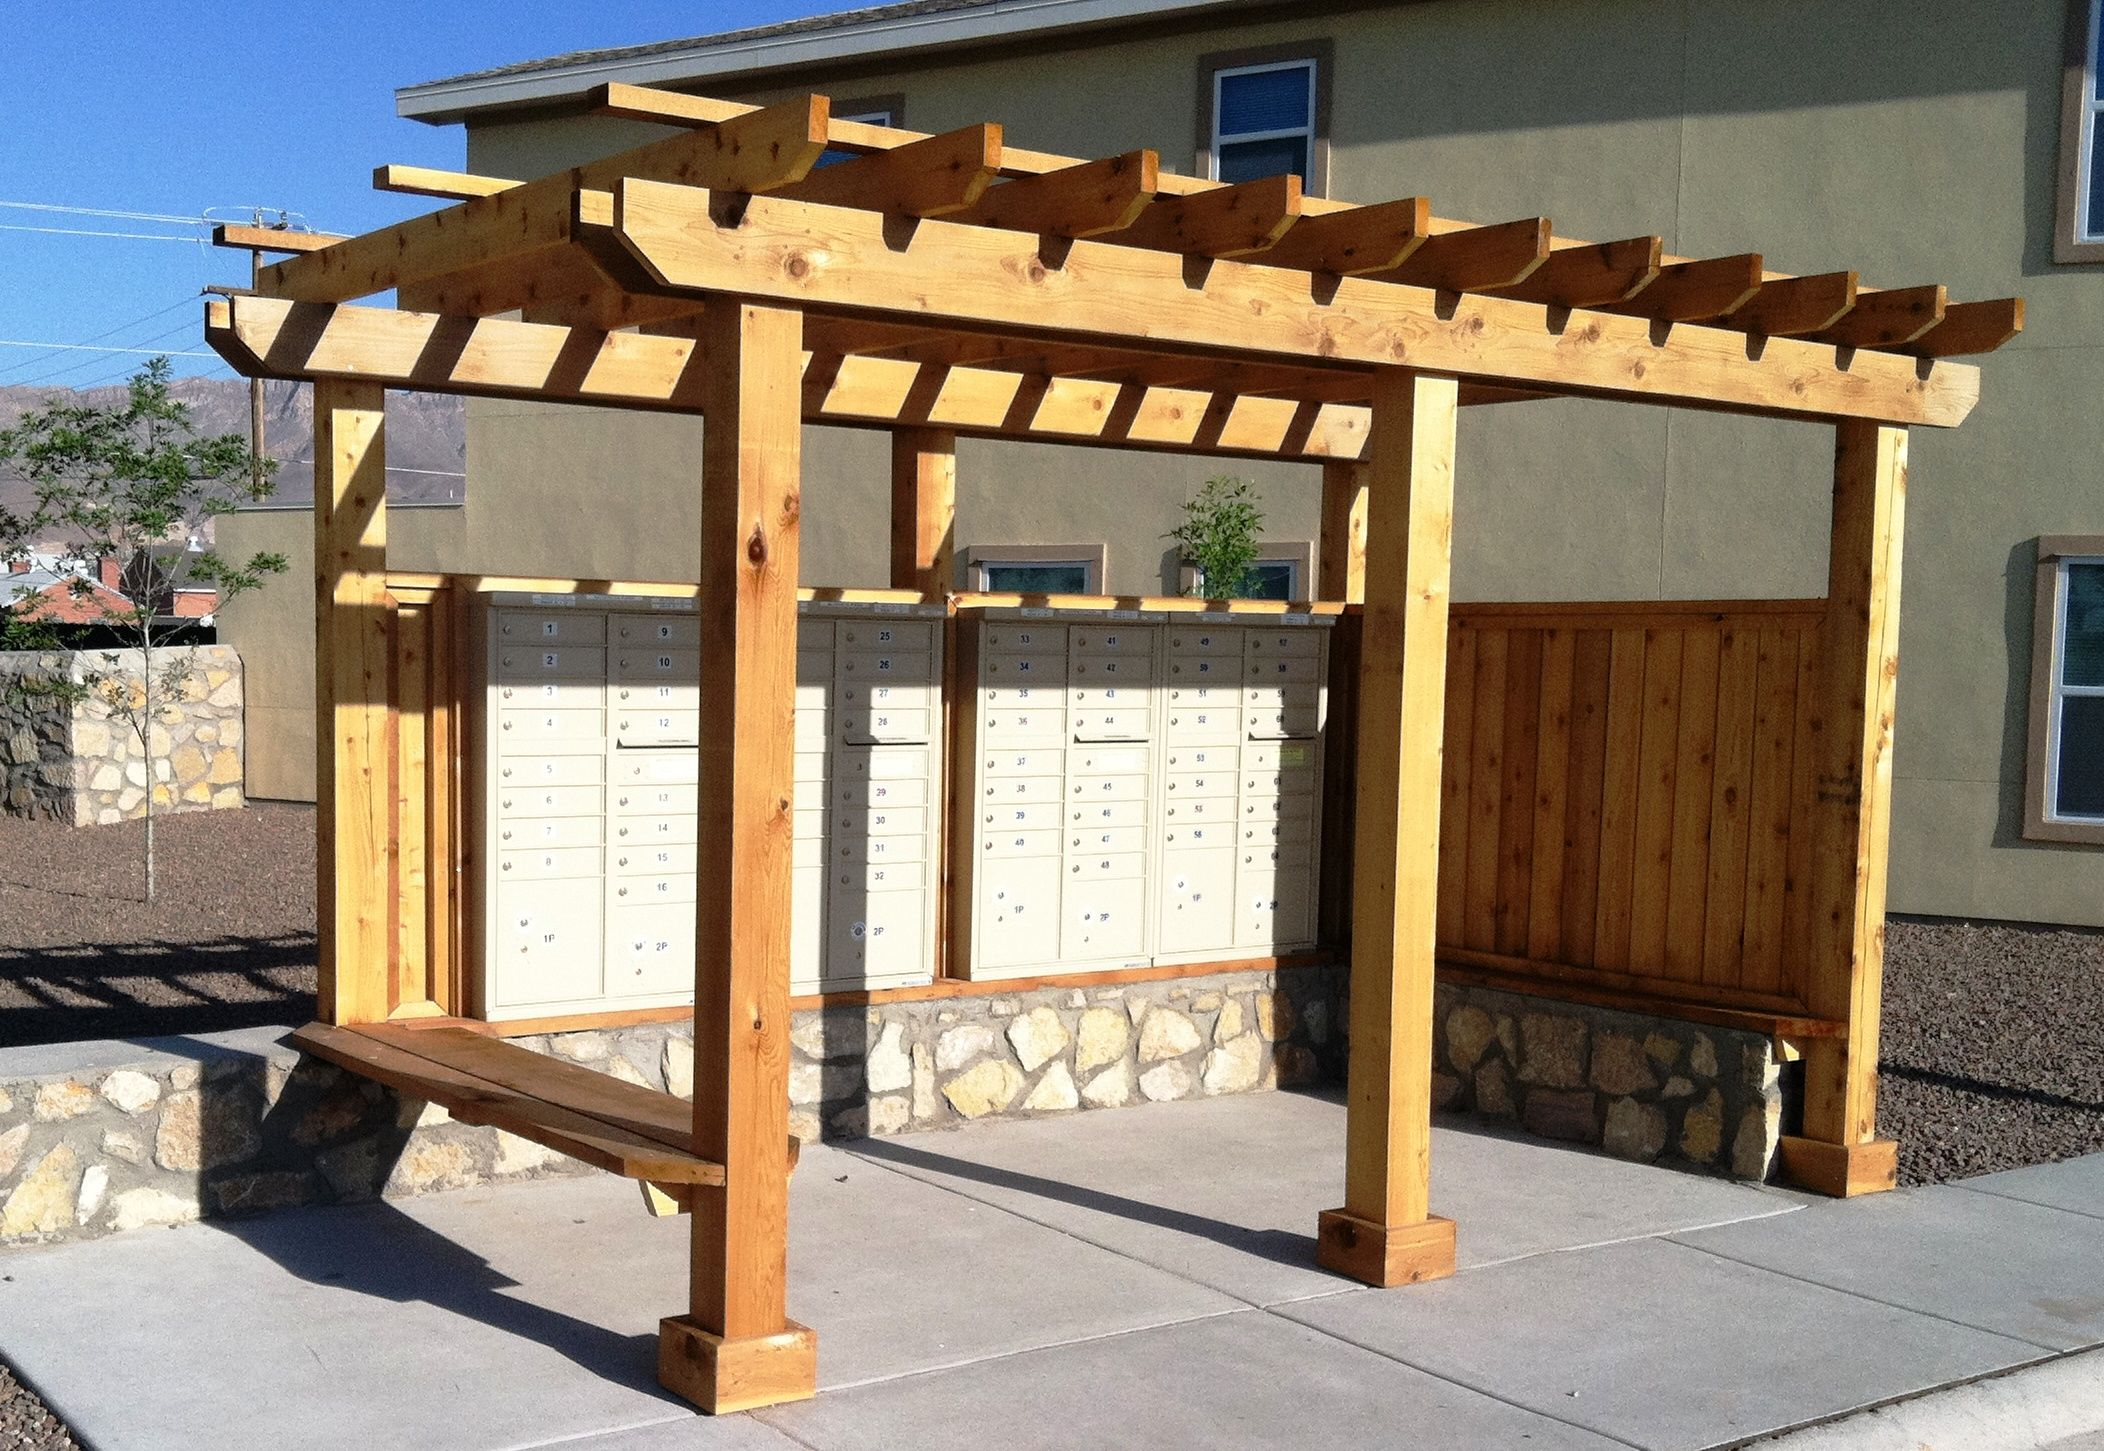 Ft Bliss Military Housing Project In Texas 1 Of Several Mail Kiosks With Images Military Housing Home Projects Covered Pergola